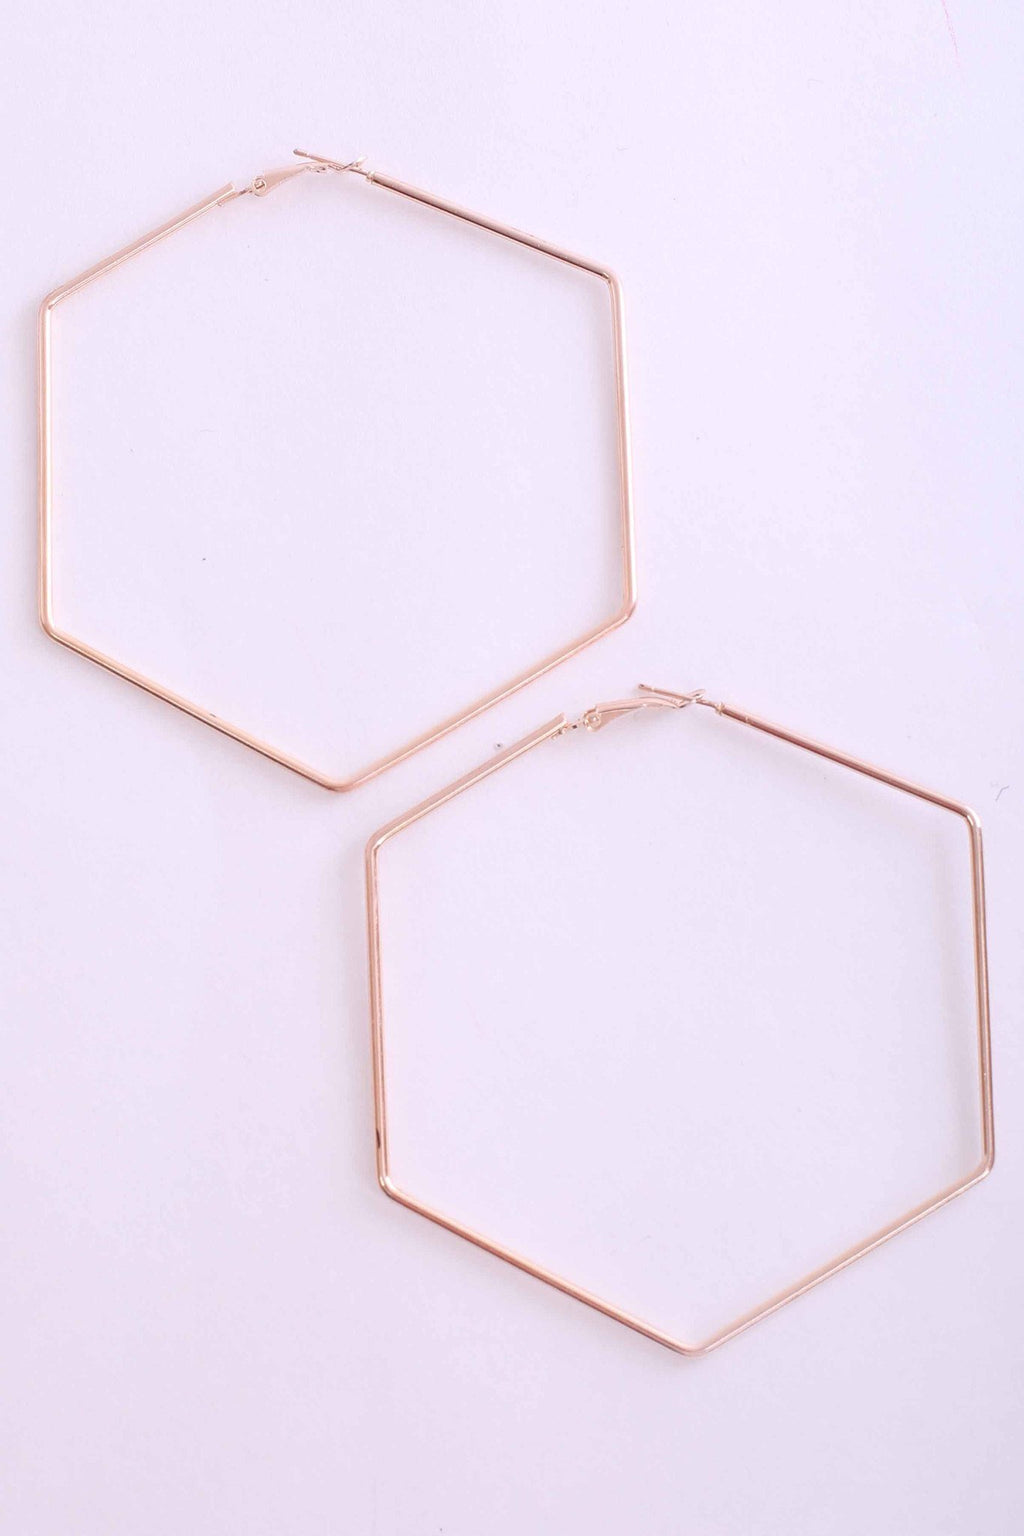 Hexagonal Earrings in Gold 0